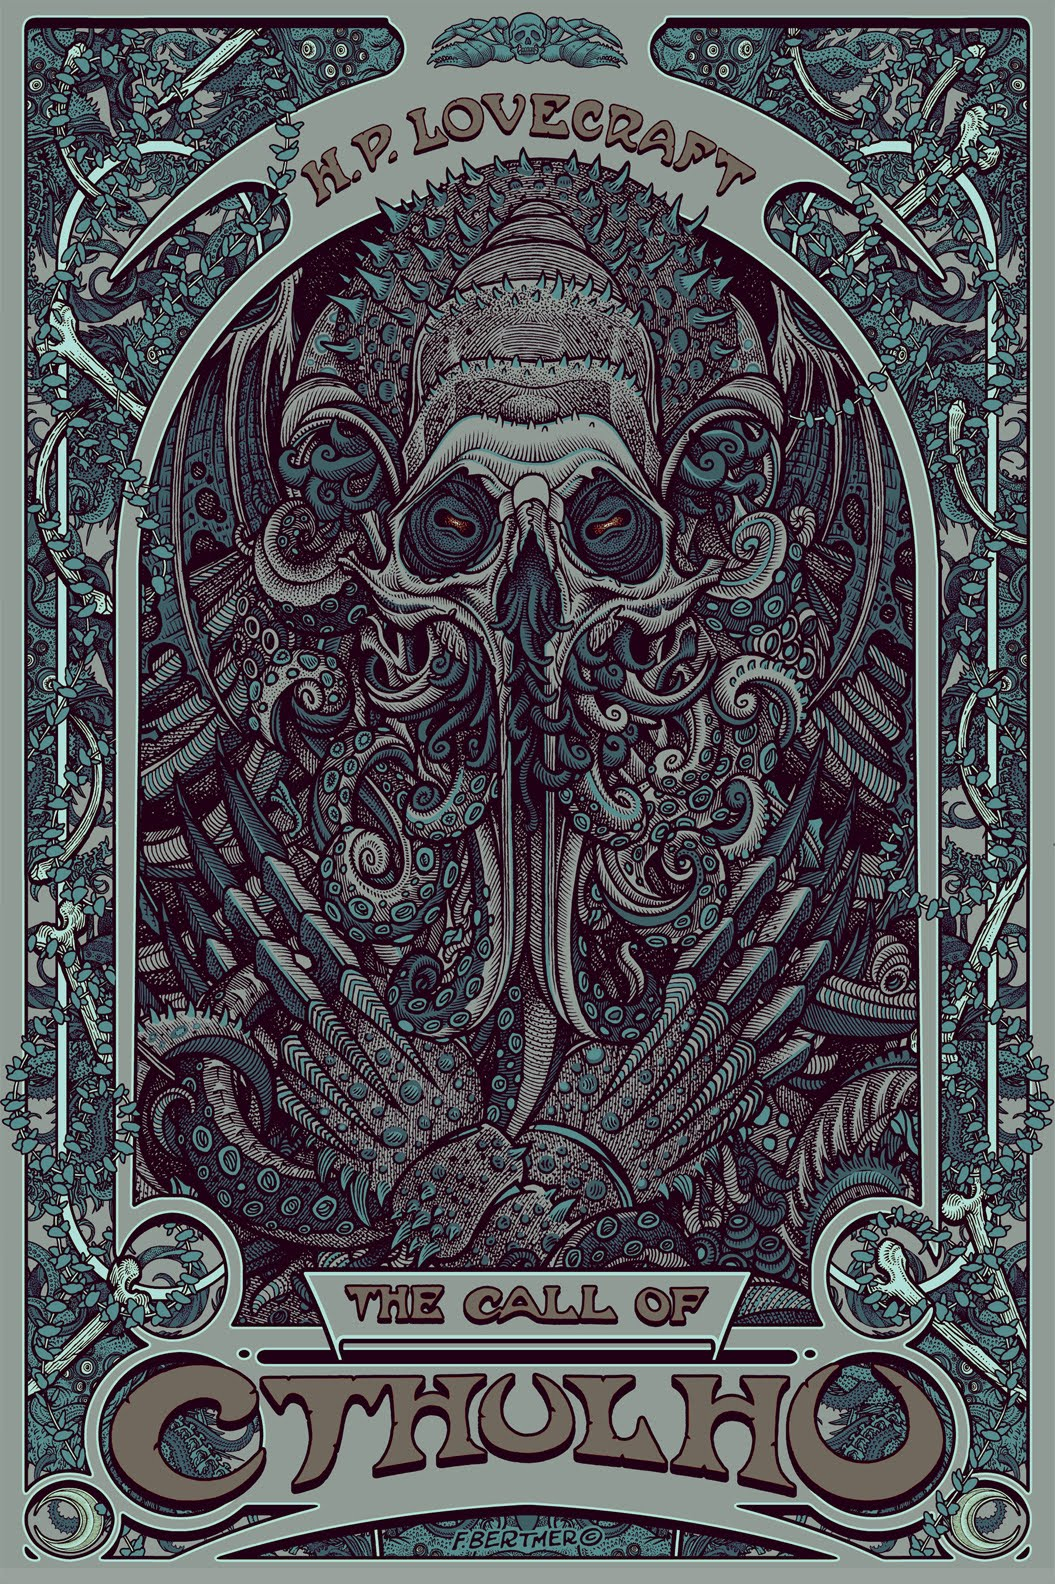 cthulhu call florian bertmer nouveau lovecraft poster prints hp artwork craft cthulu posters painting paradise lost artist illustration